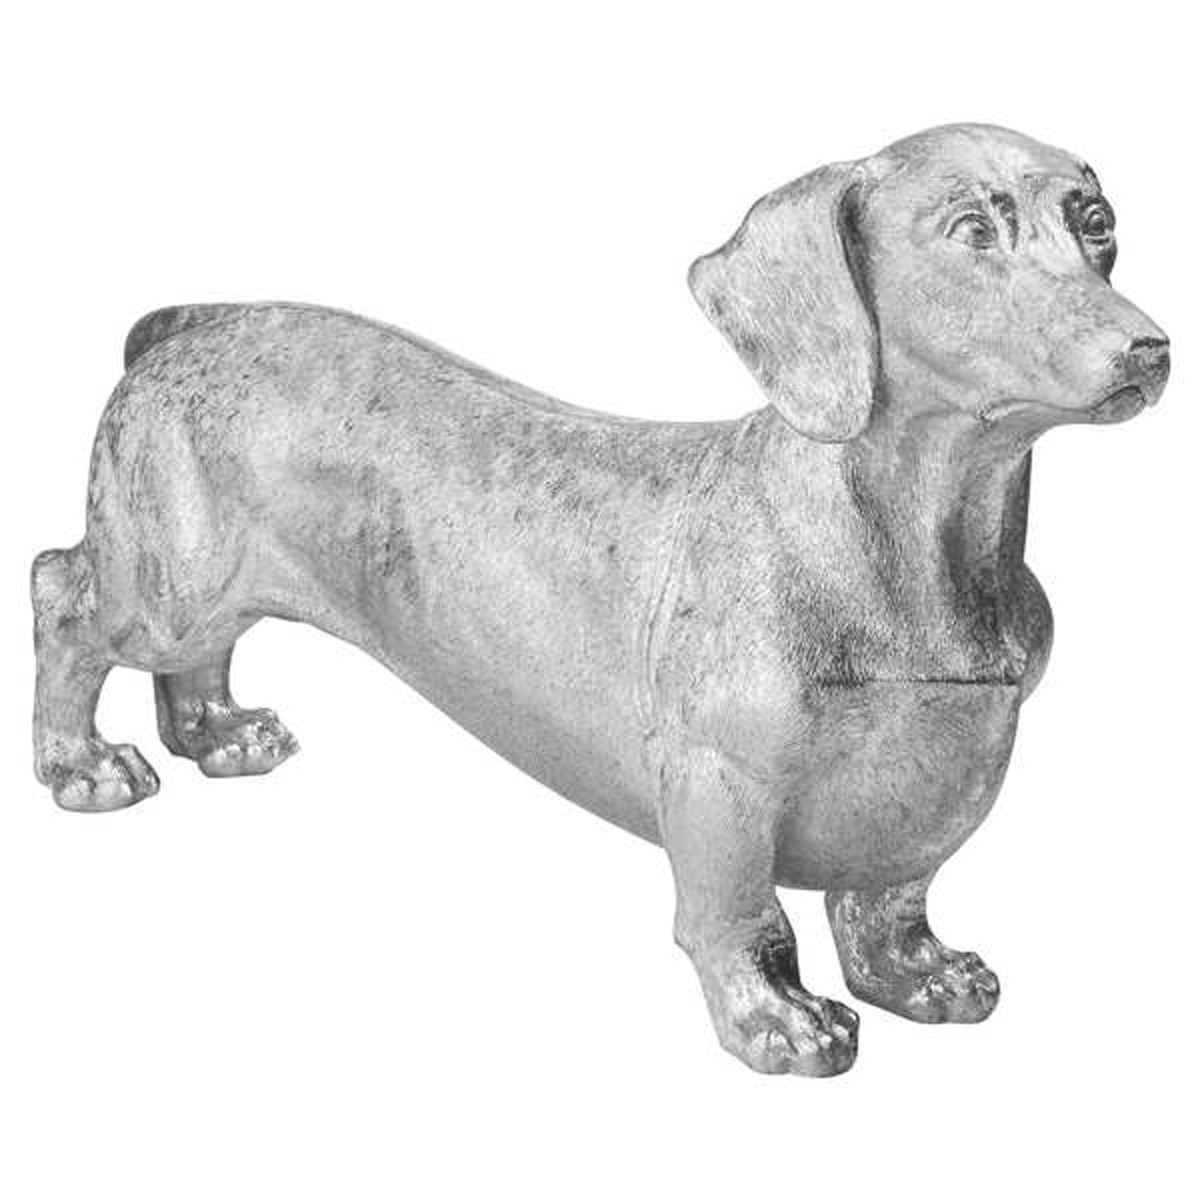 Antique Silver Dachshund Sausage Dog Ornament Interior Flair